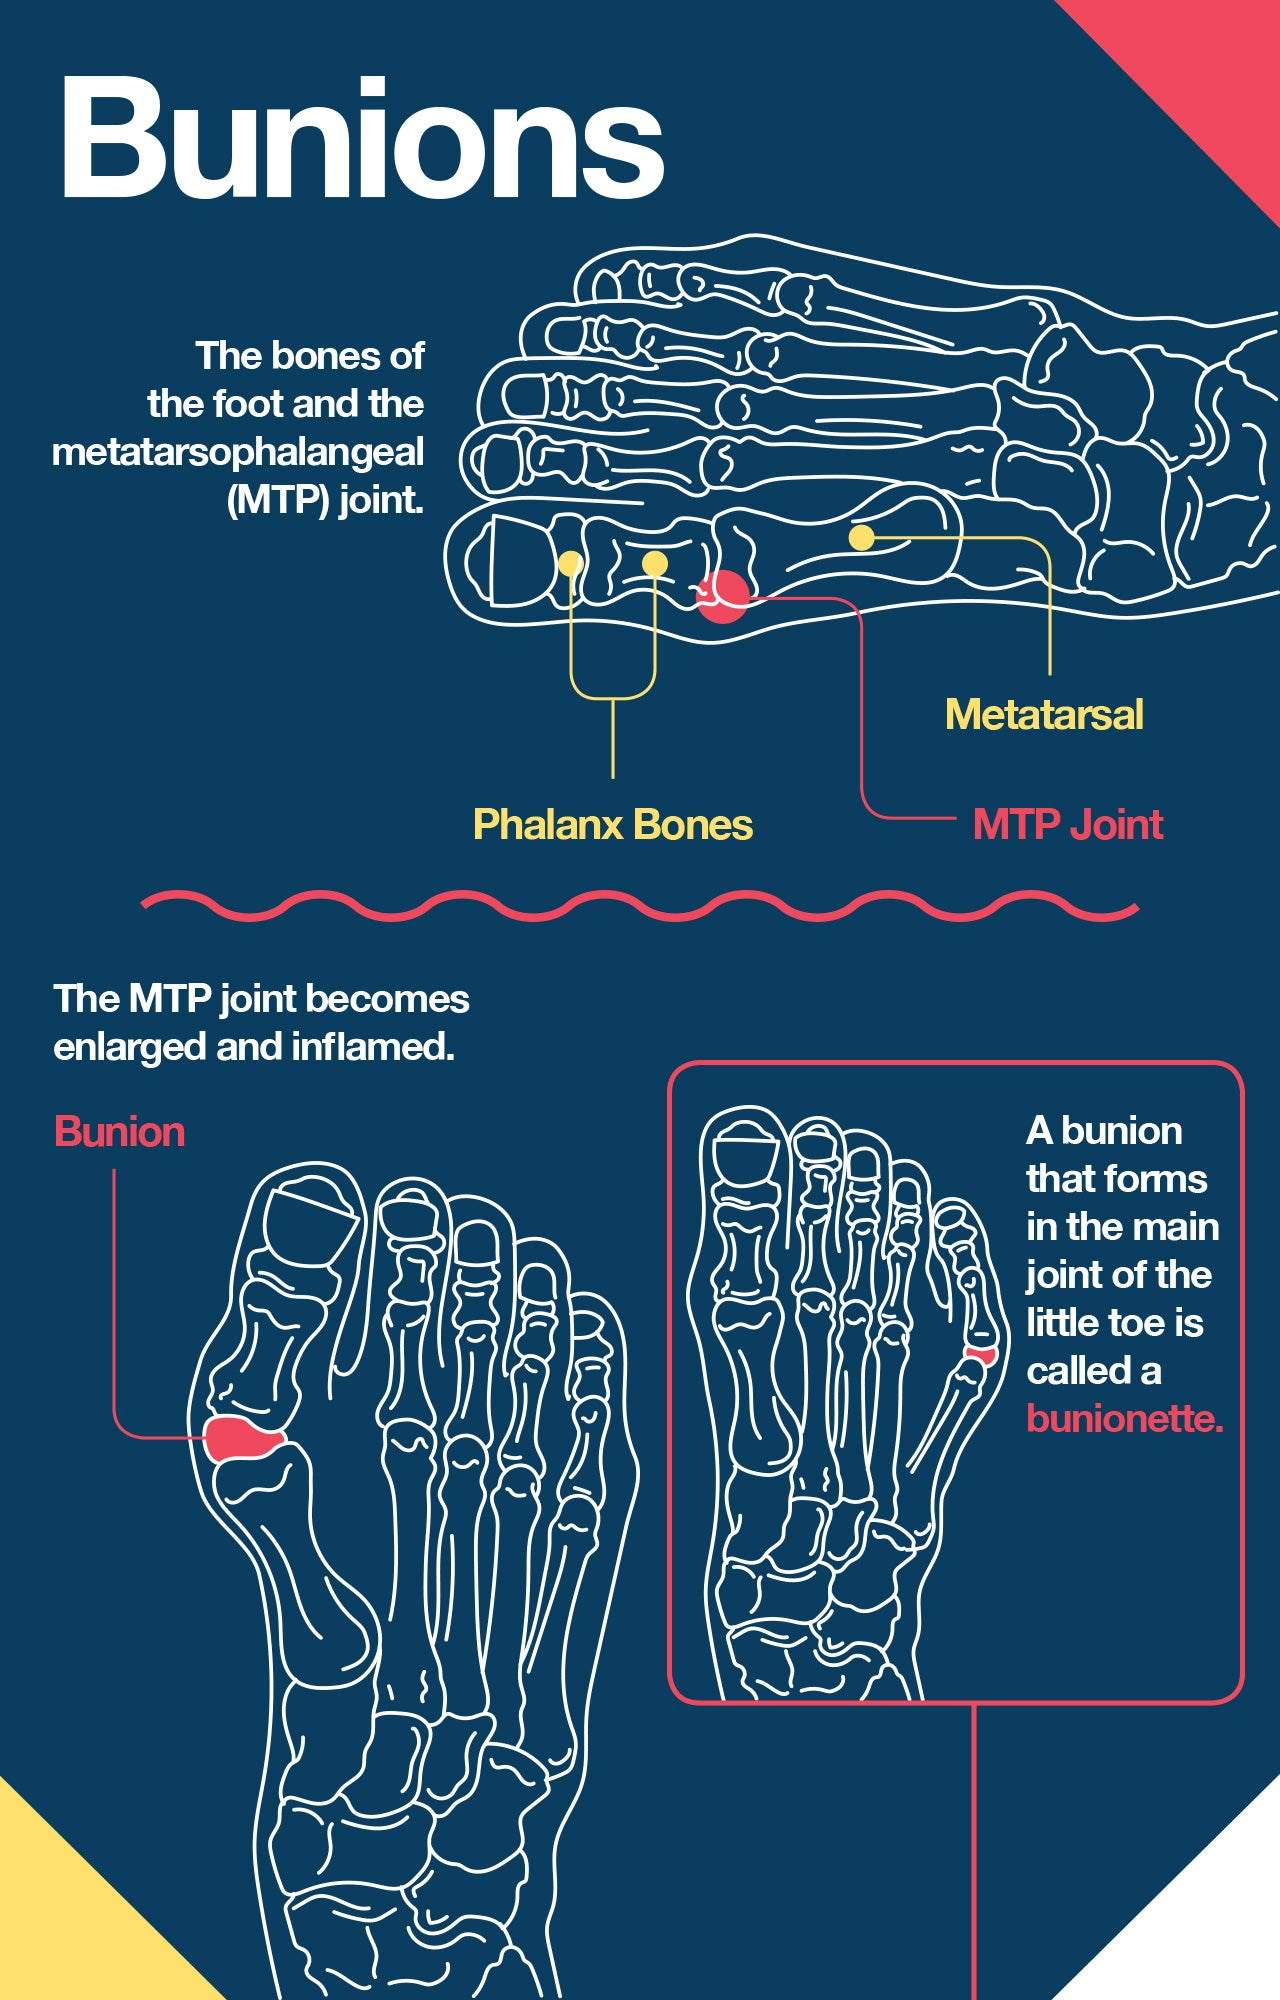 How bunions form